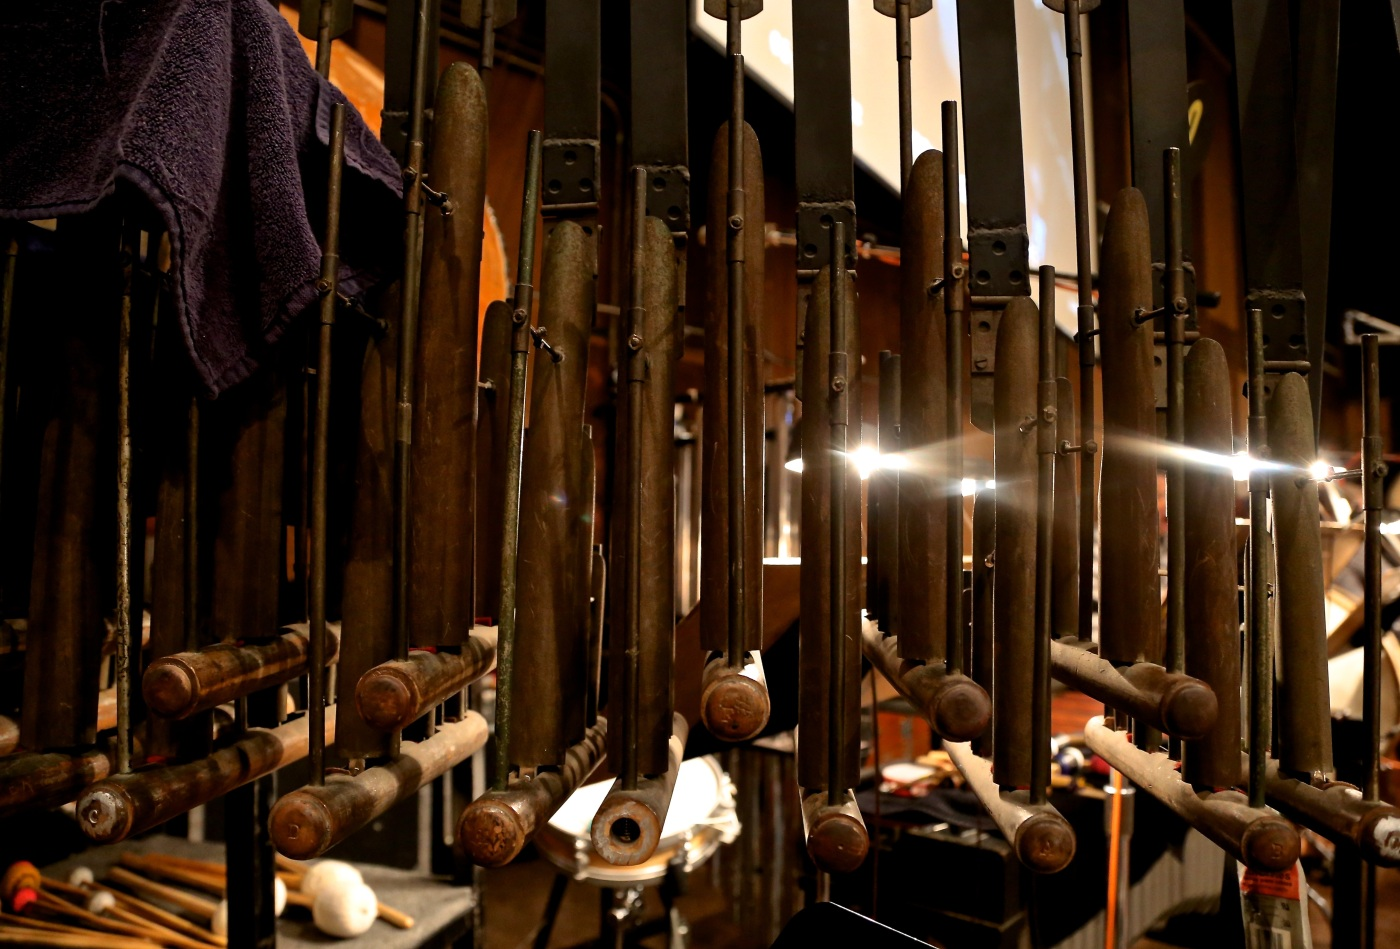 Day 98:4 Angklung